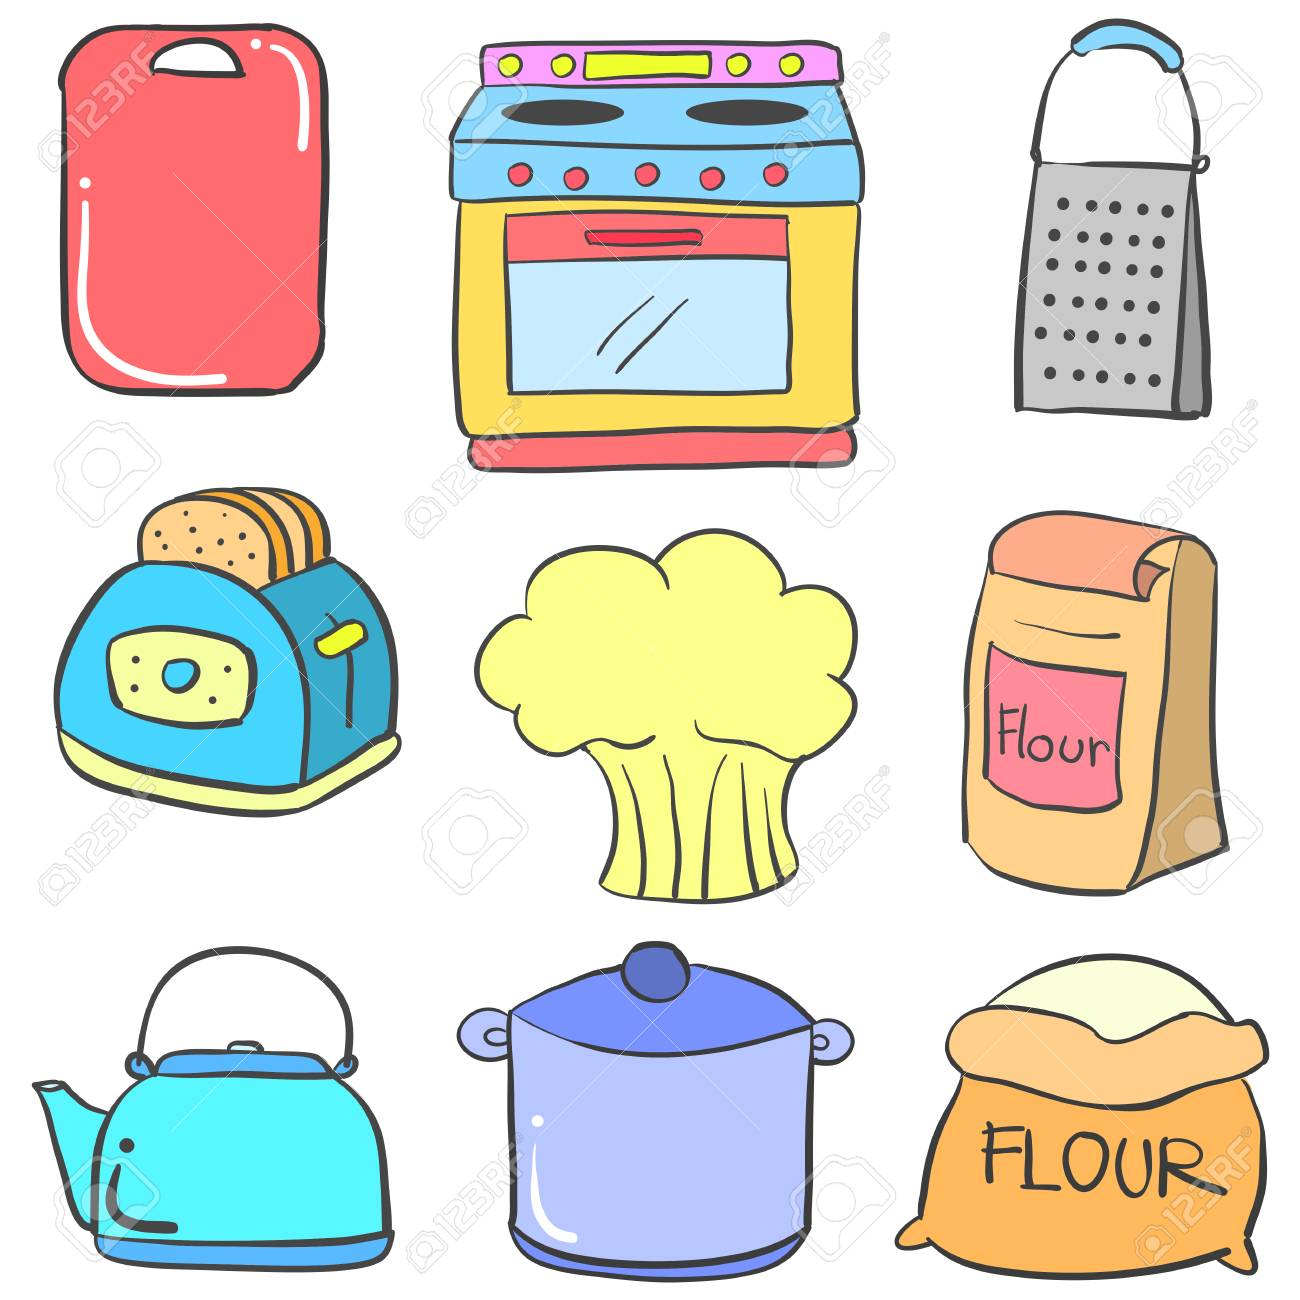 Doodle Of Kitchen Set Style Vector Art Royalty Free Cliparts